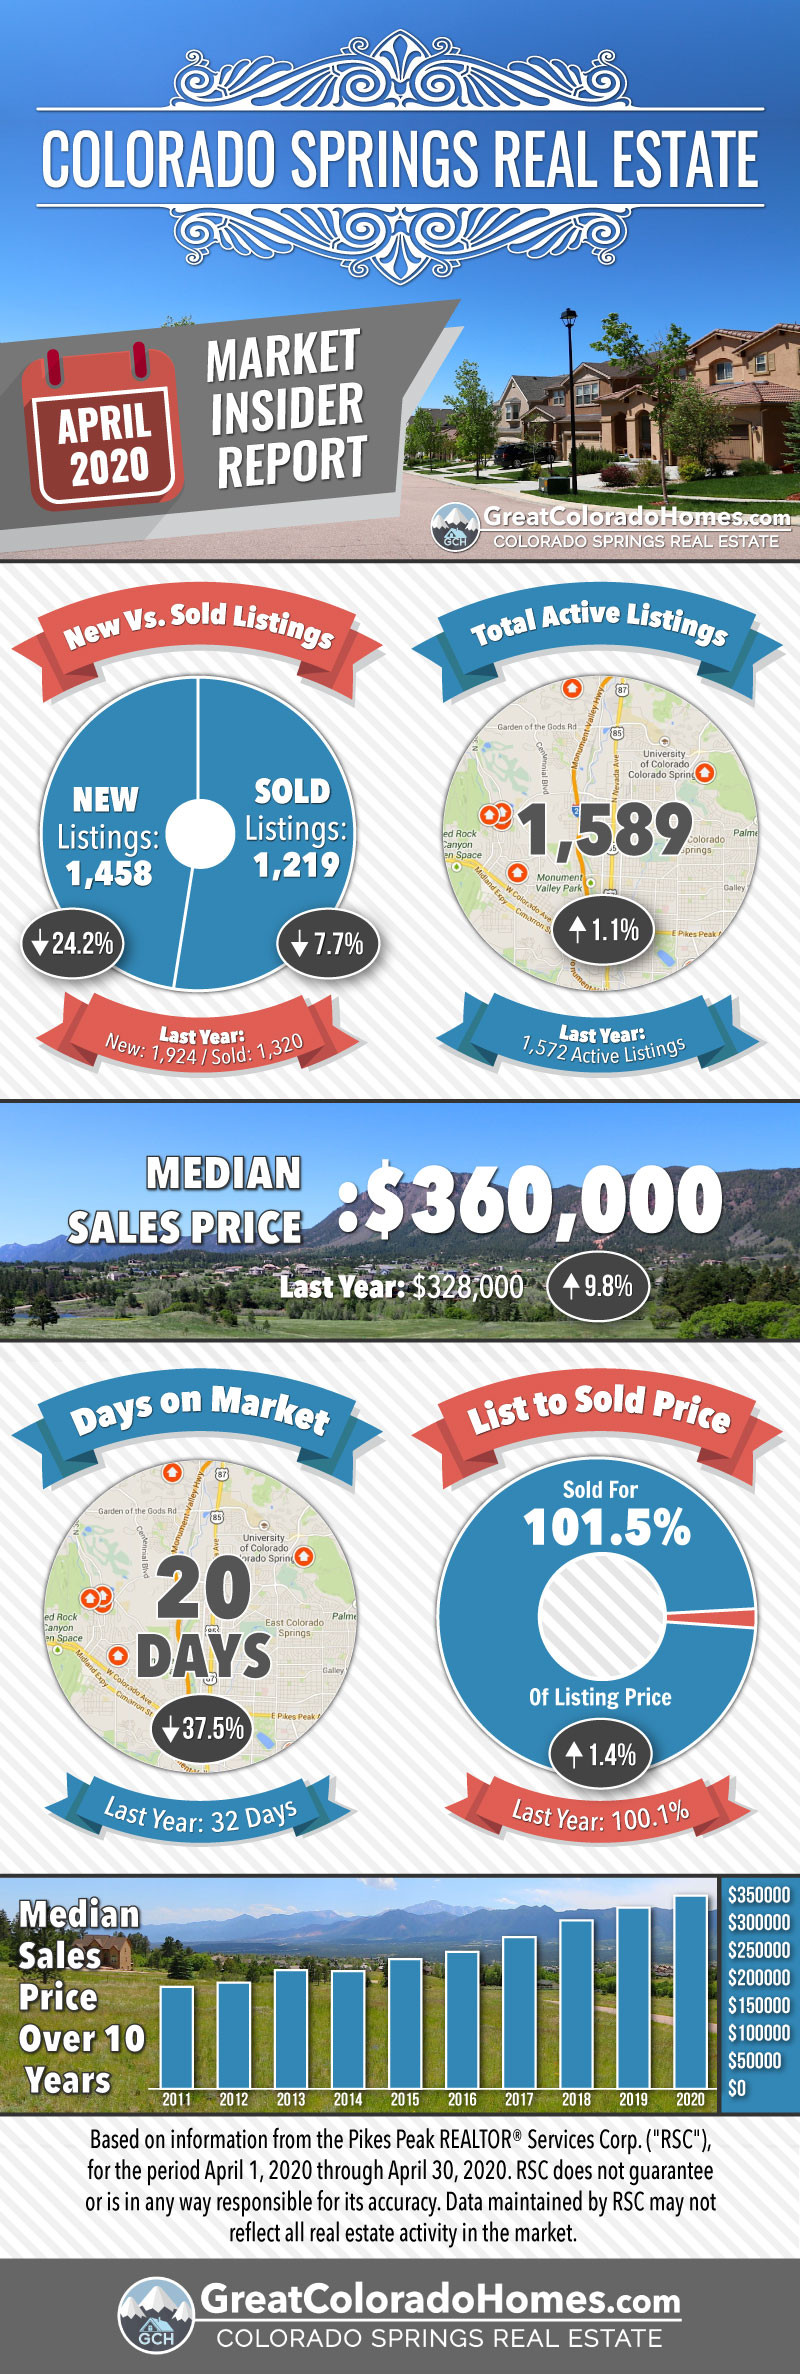 April 2020 Colorado Springs Real Estate Market Statistics Infographic